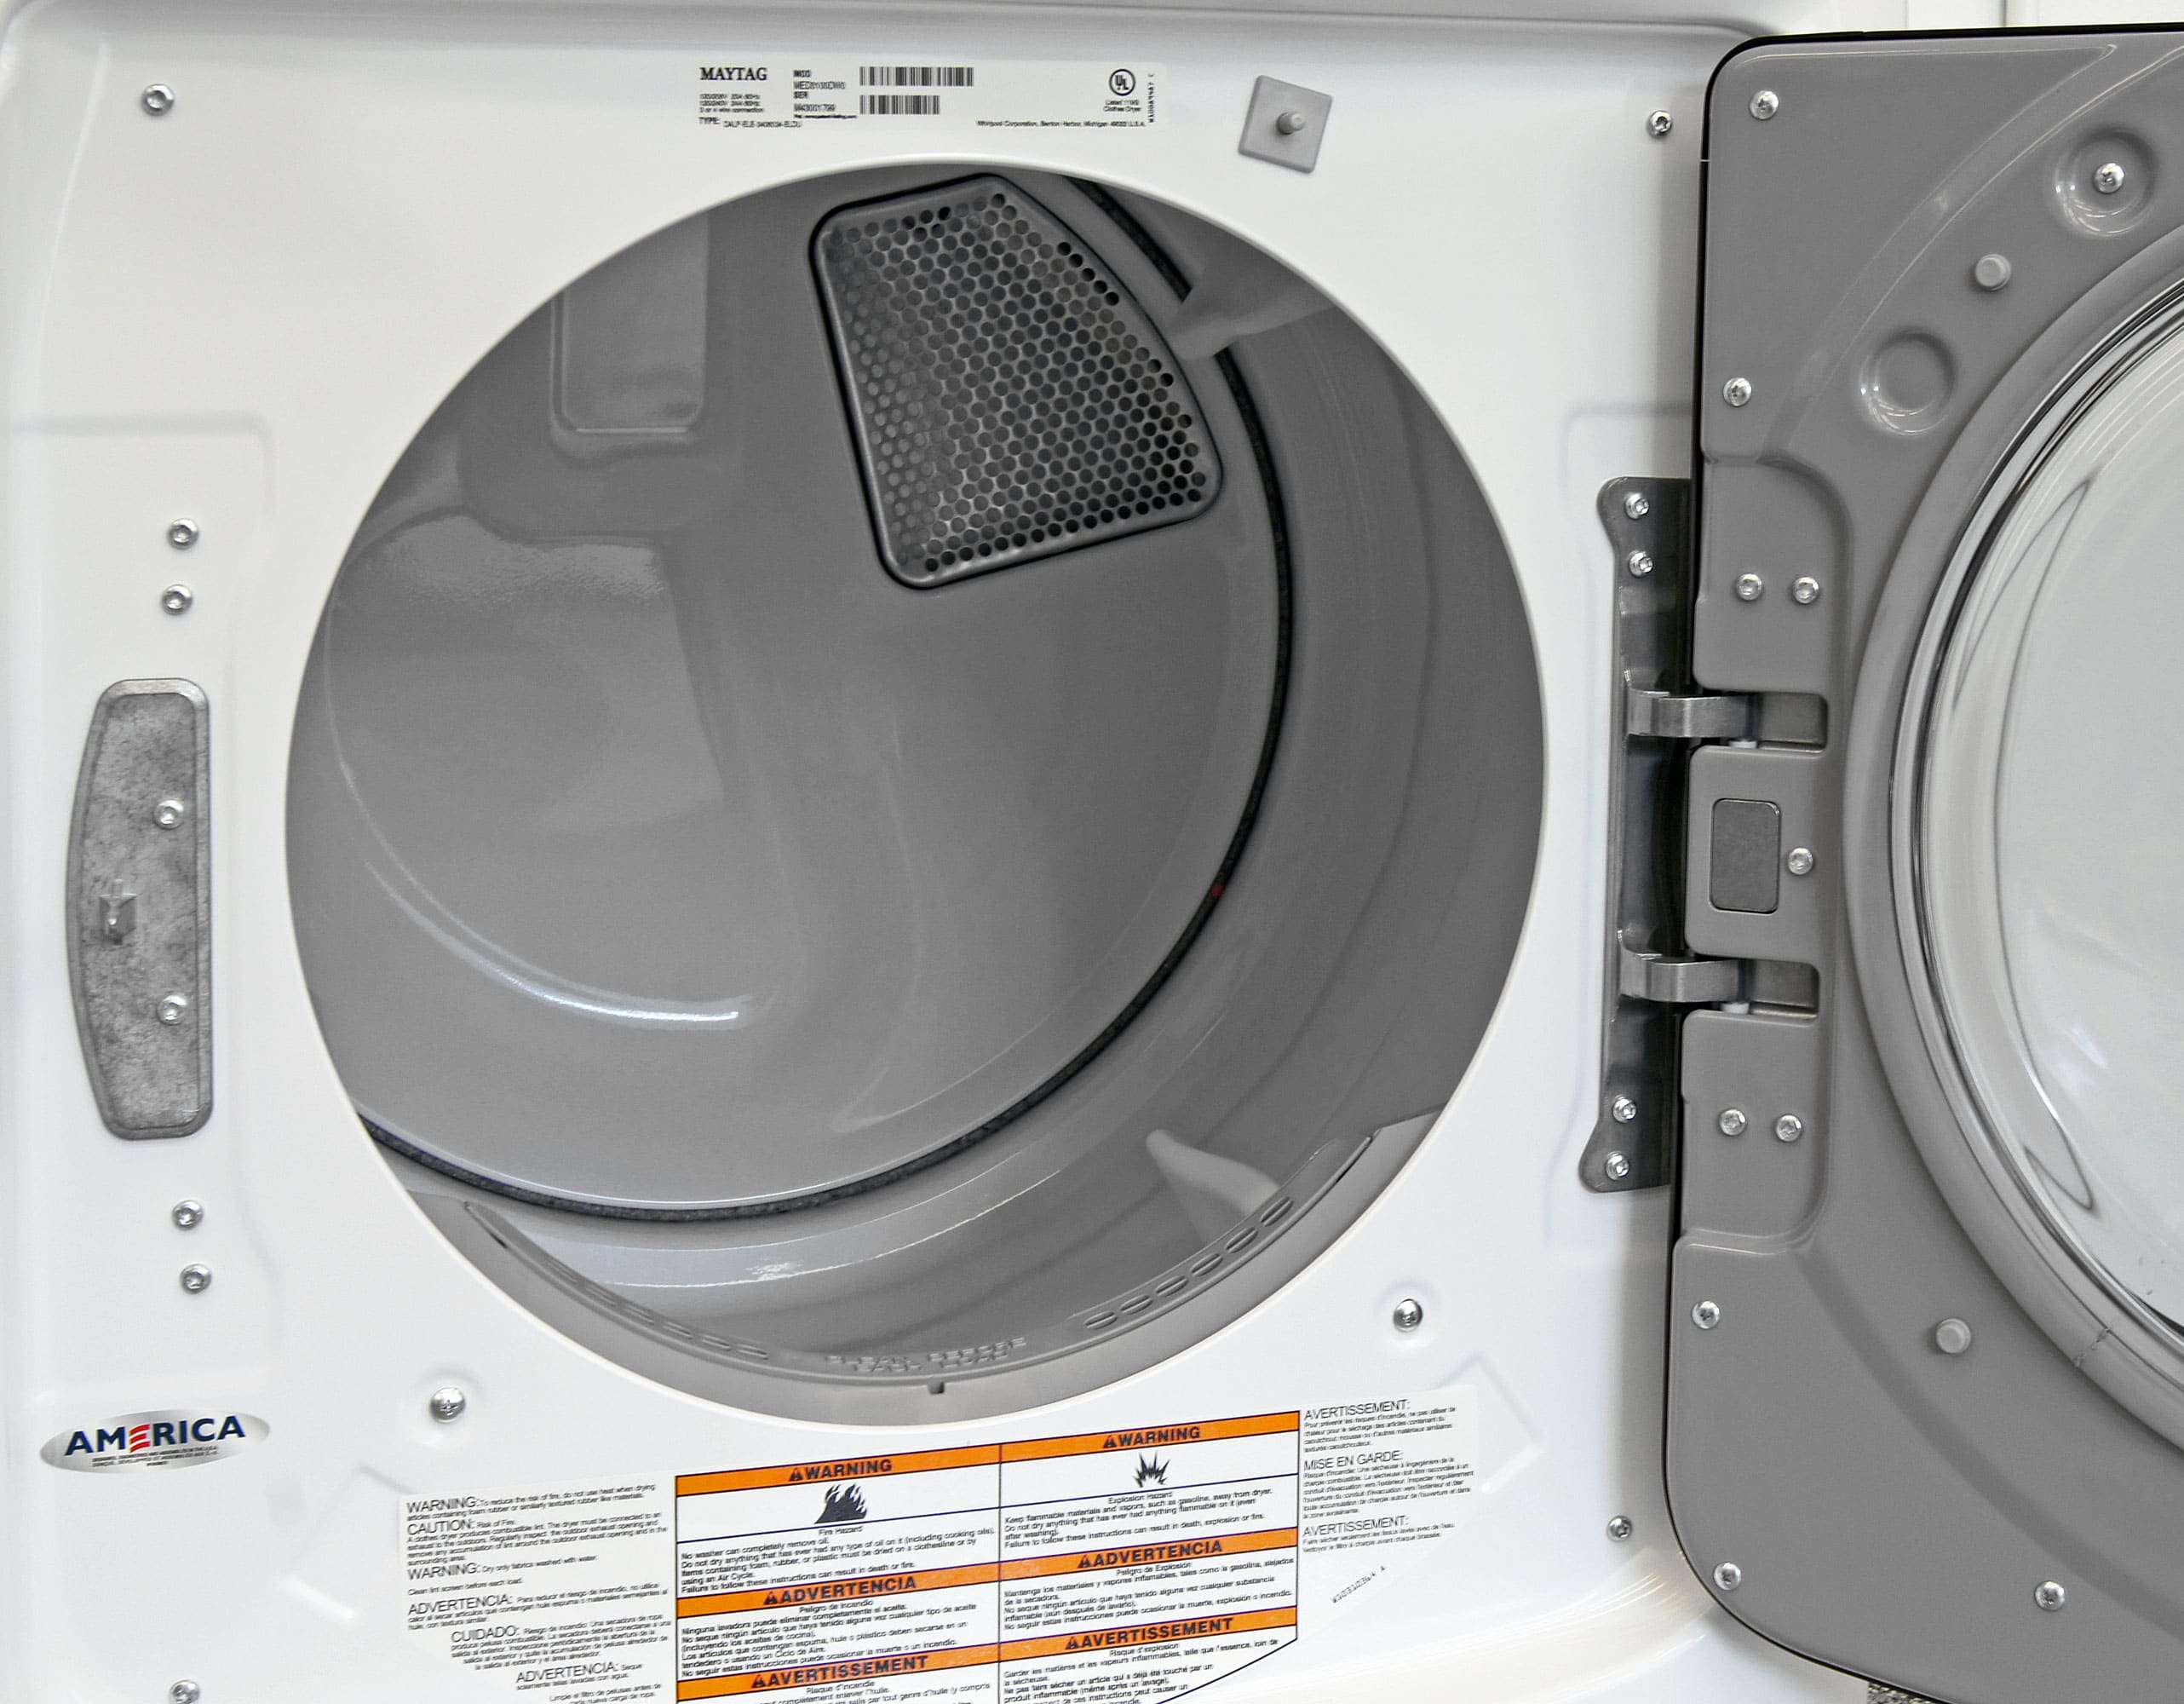 On the inside, you find a white plastic drum—unsurprising for a low-cost dryer like the Maytag Maxima MED3100DW.